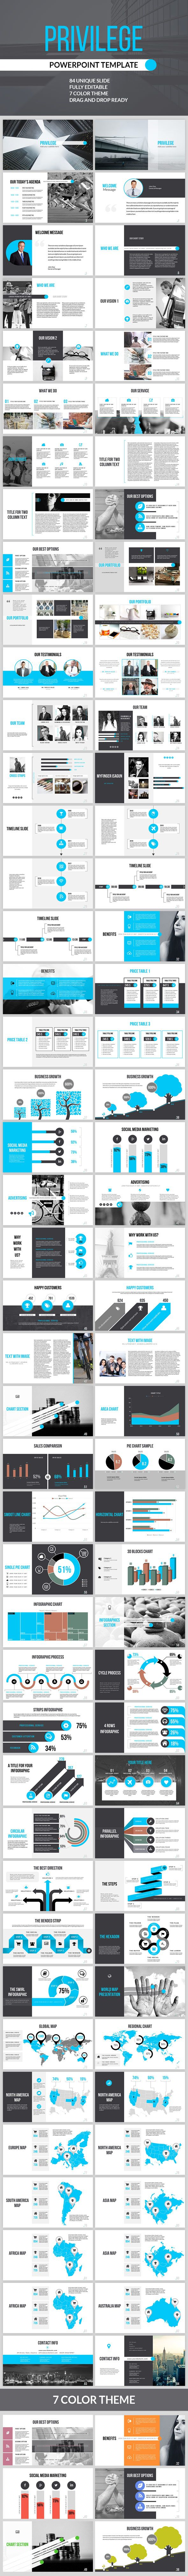 Privilege - Multipurpose PowerPoint Presentation (PowerPoint Templates)